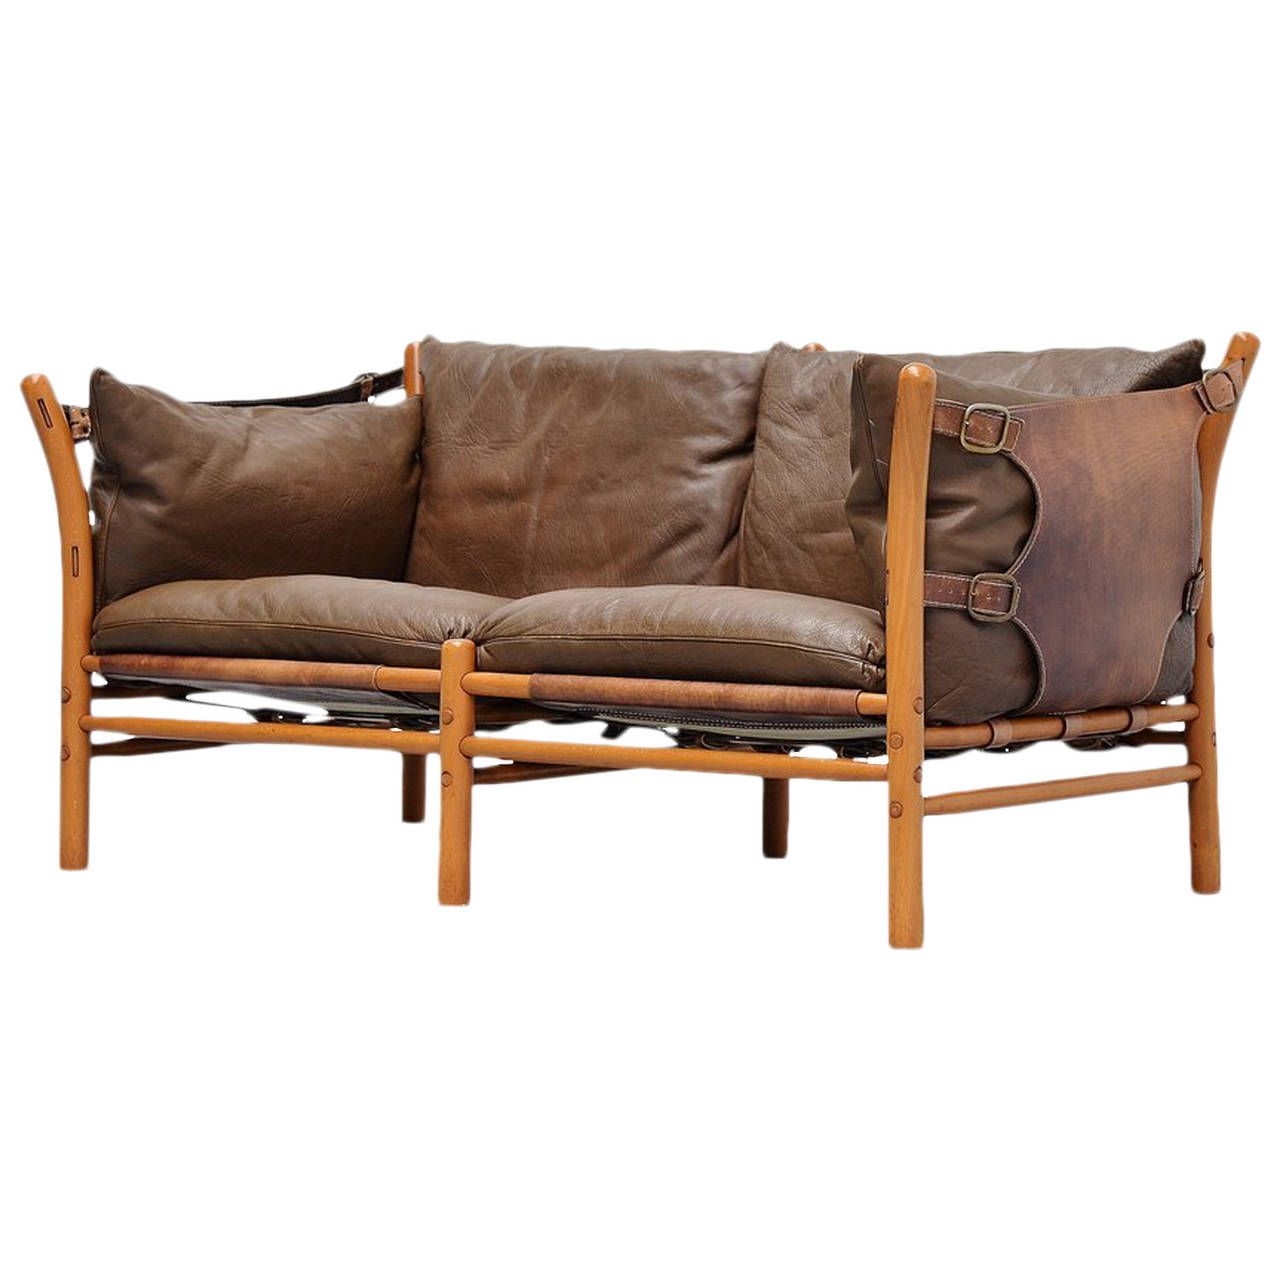 Terrific Arne Norell Ilona Two Seat Sofa Sweden 1960 In 2019 Jj Alphanode Cool Chair Designs And Ideas Alphanodeonline